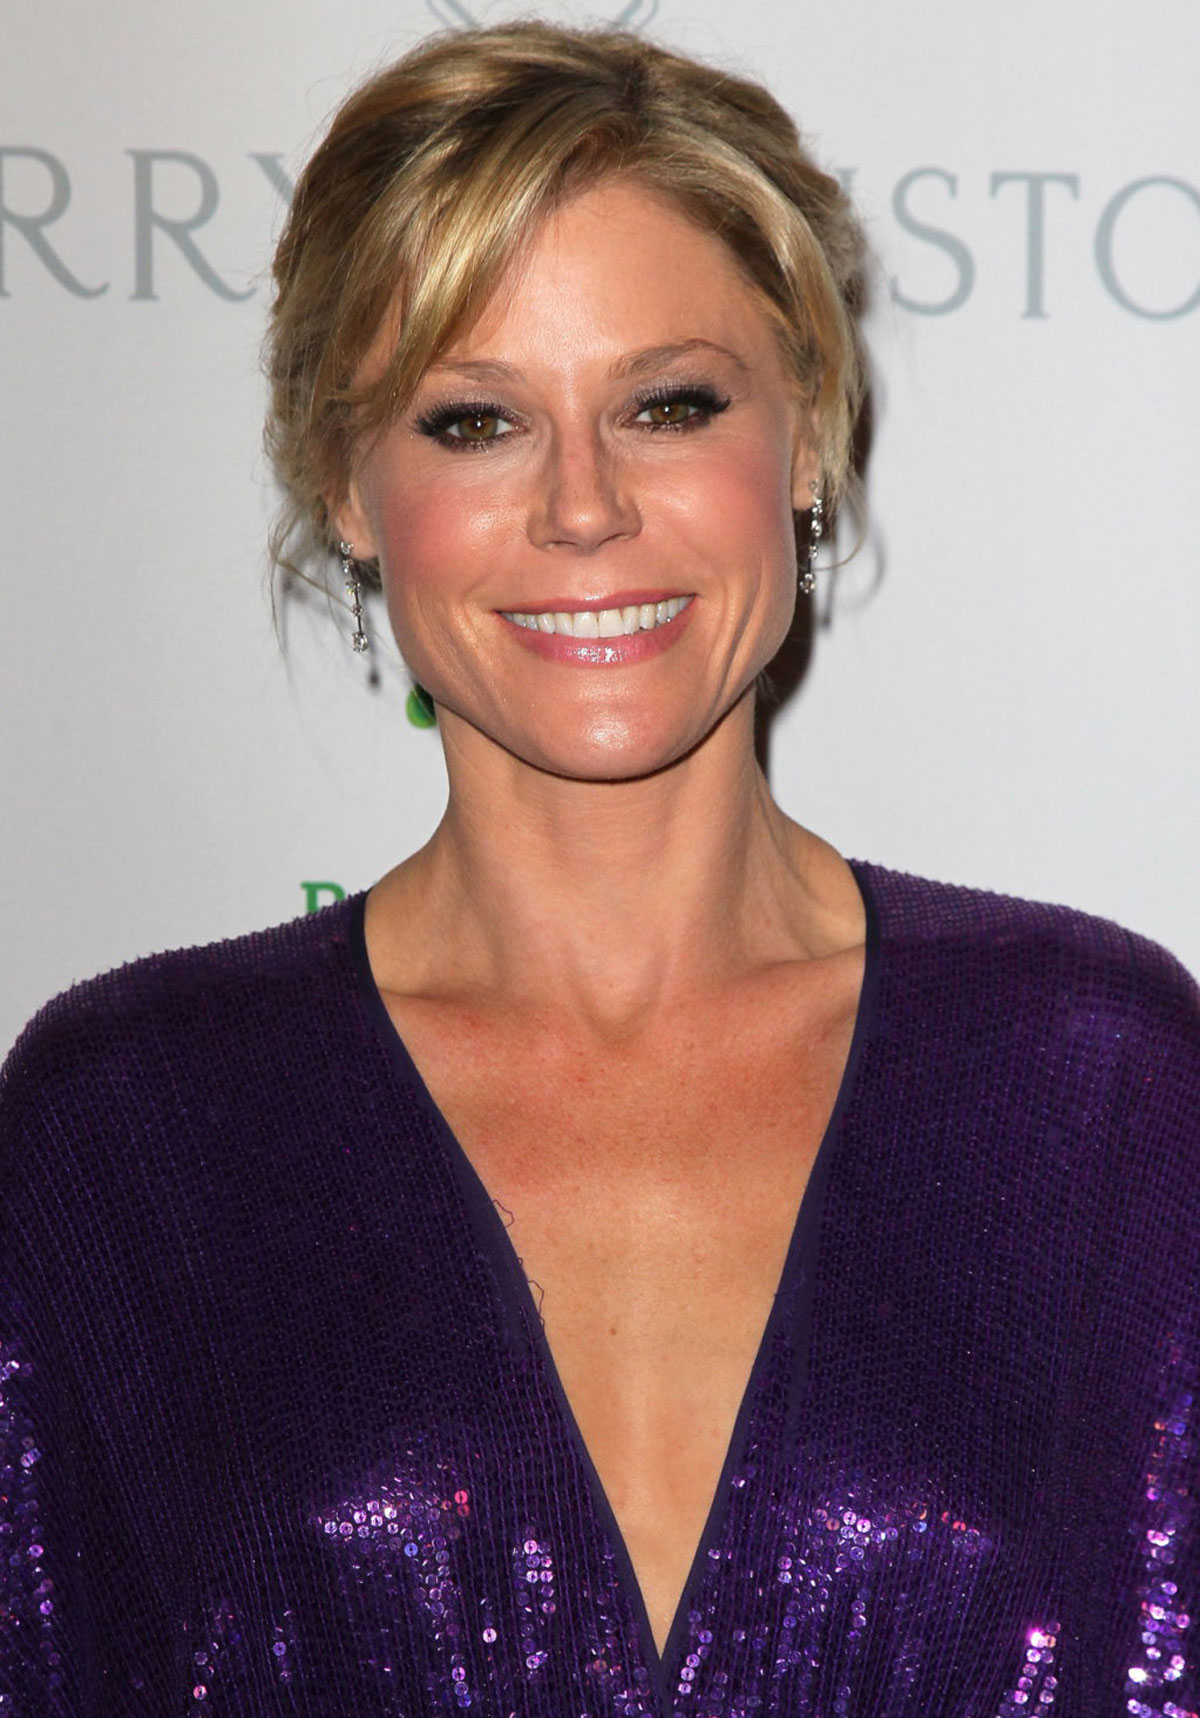 JULIE BOWEN - JULIE-BOWEN-at-The-First-Annual-Baby2Baby-Gala-in-Culver-City-3